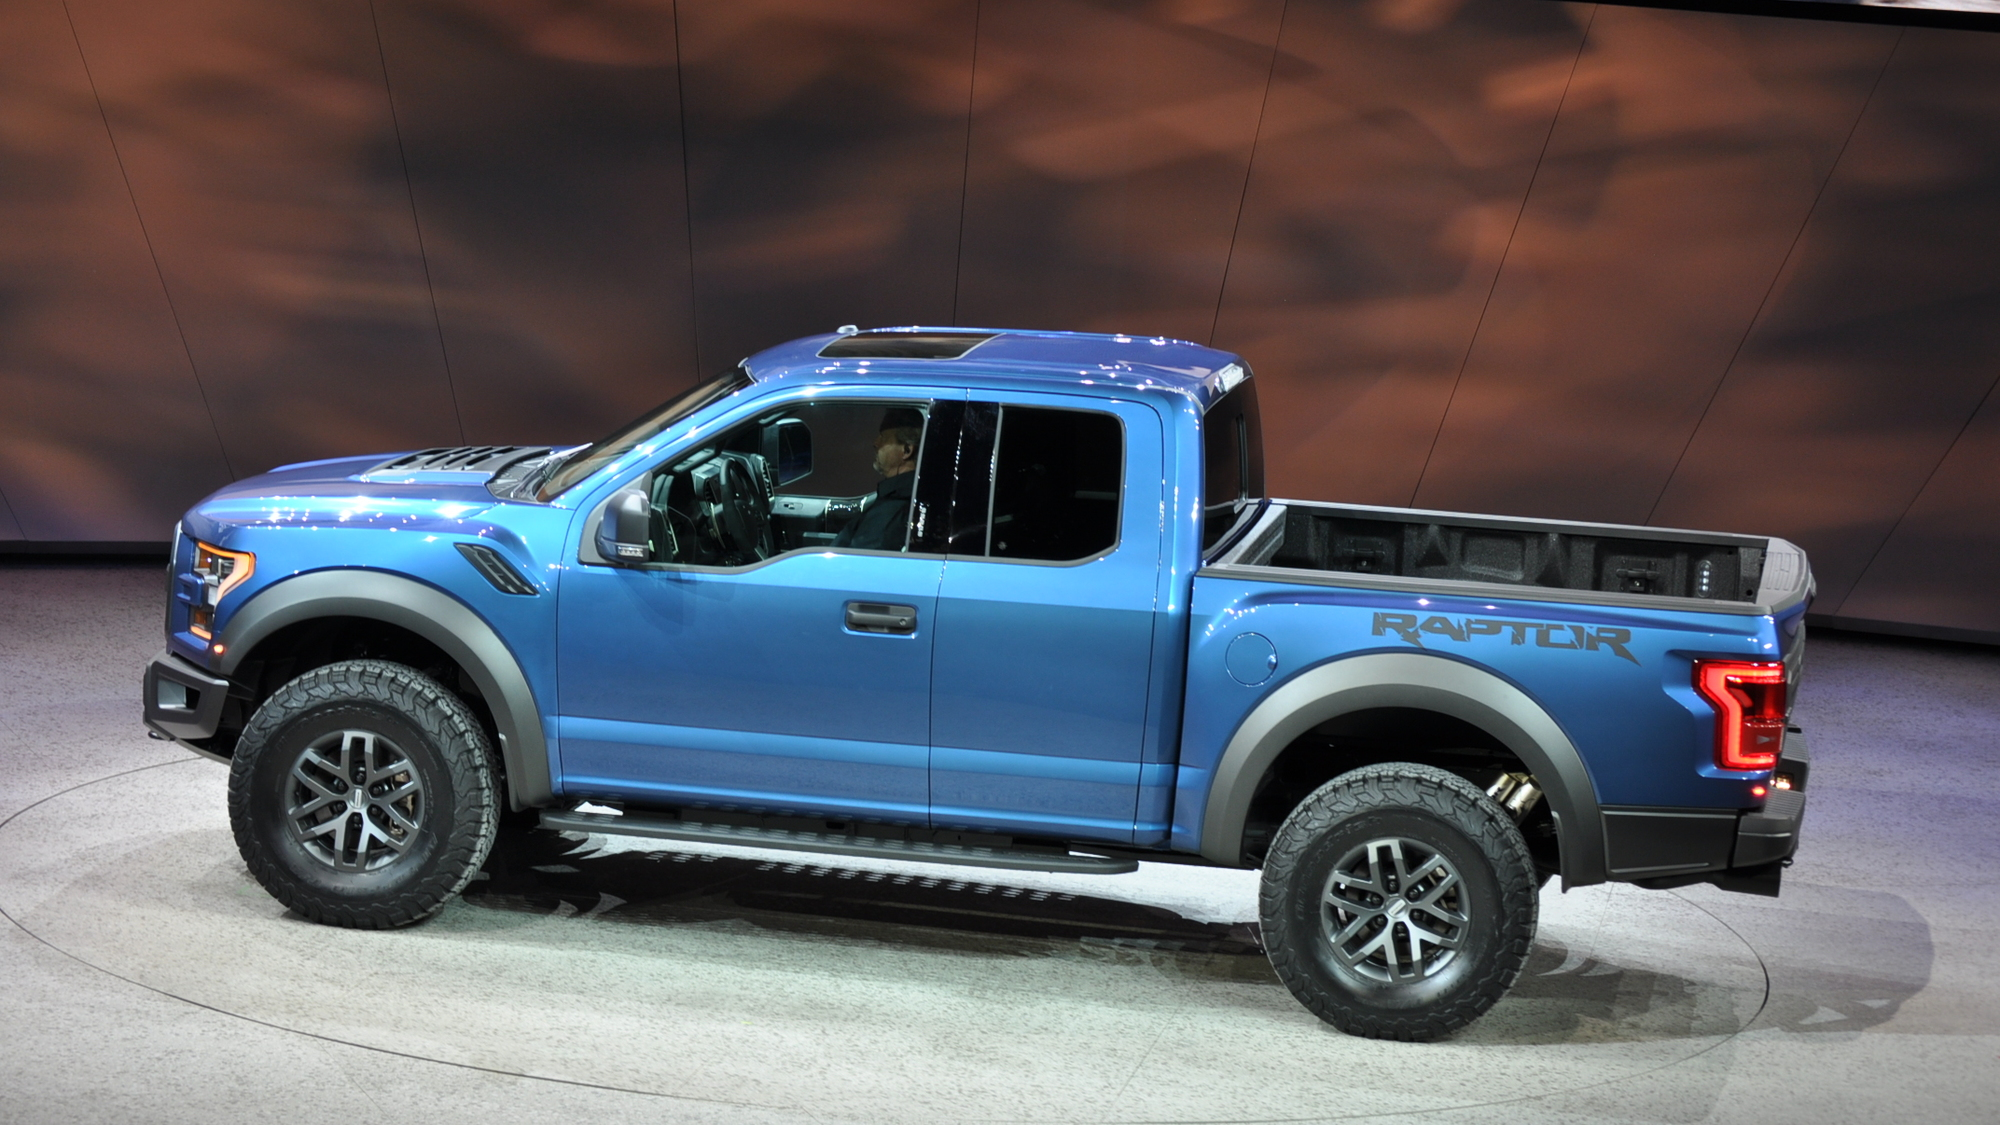 2017 Ford F-150 Raptor, 2015 Detroit Auto Show